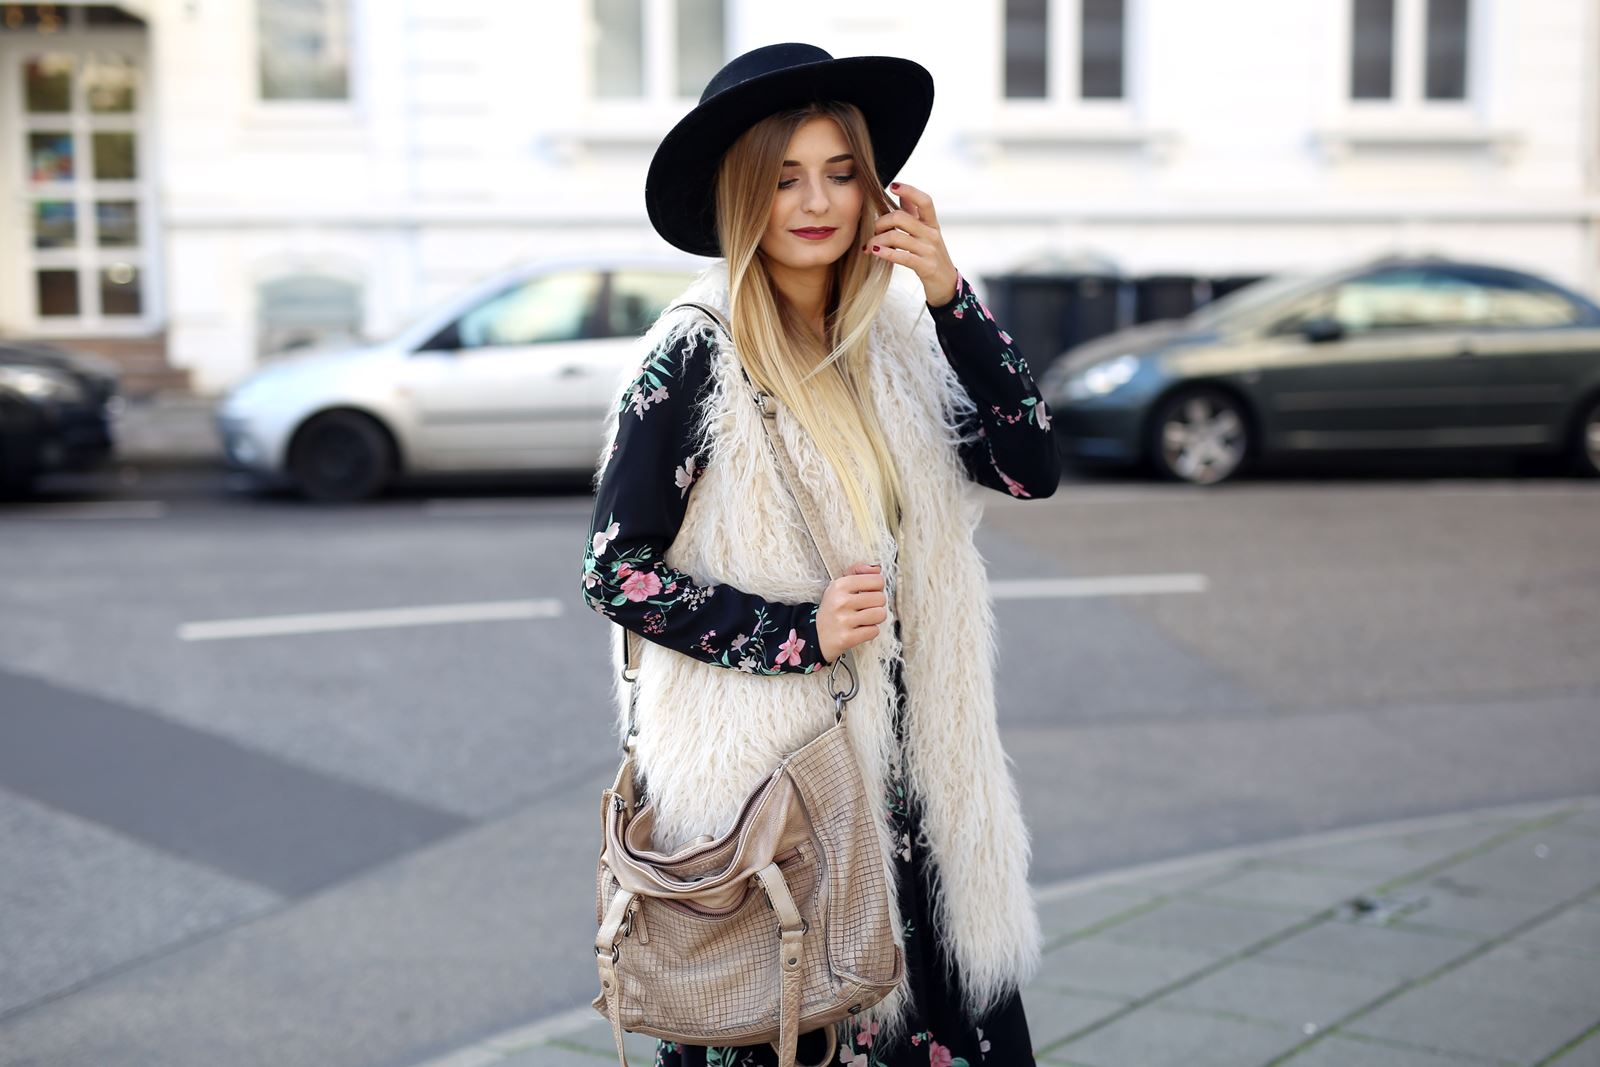 modeblog-fashion-blog-outfit-herbst-fake-fur-maxi-kleid-7